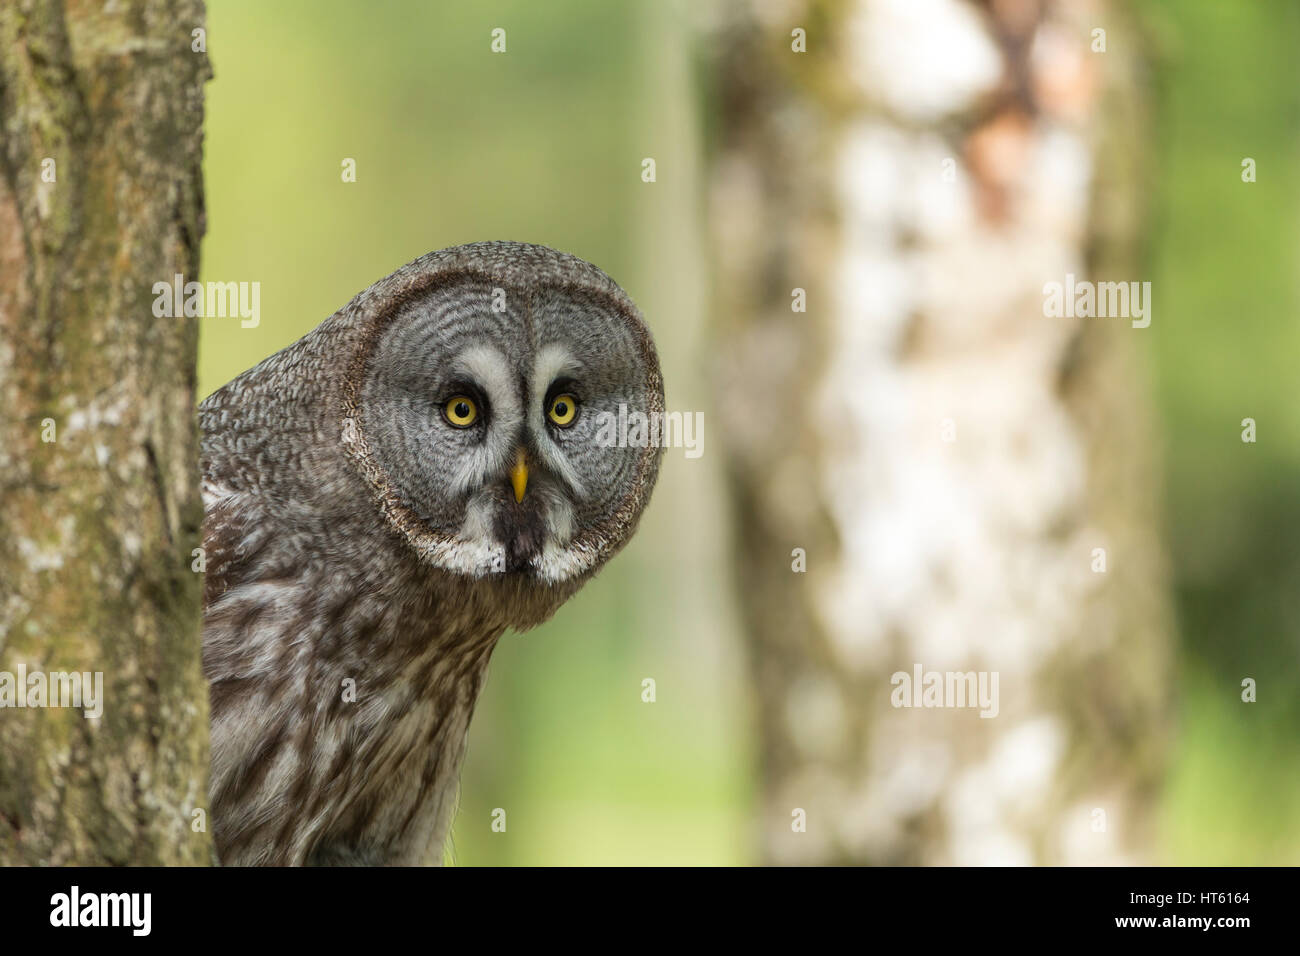 Great grey owl Strix nebulosa (captive), adult female, perched on branch, Hawk Conservancy Trust, Hampshire, UK - Stock Image